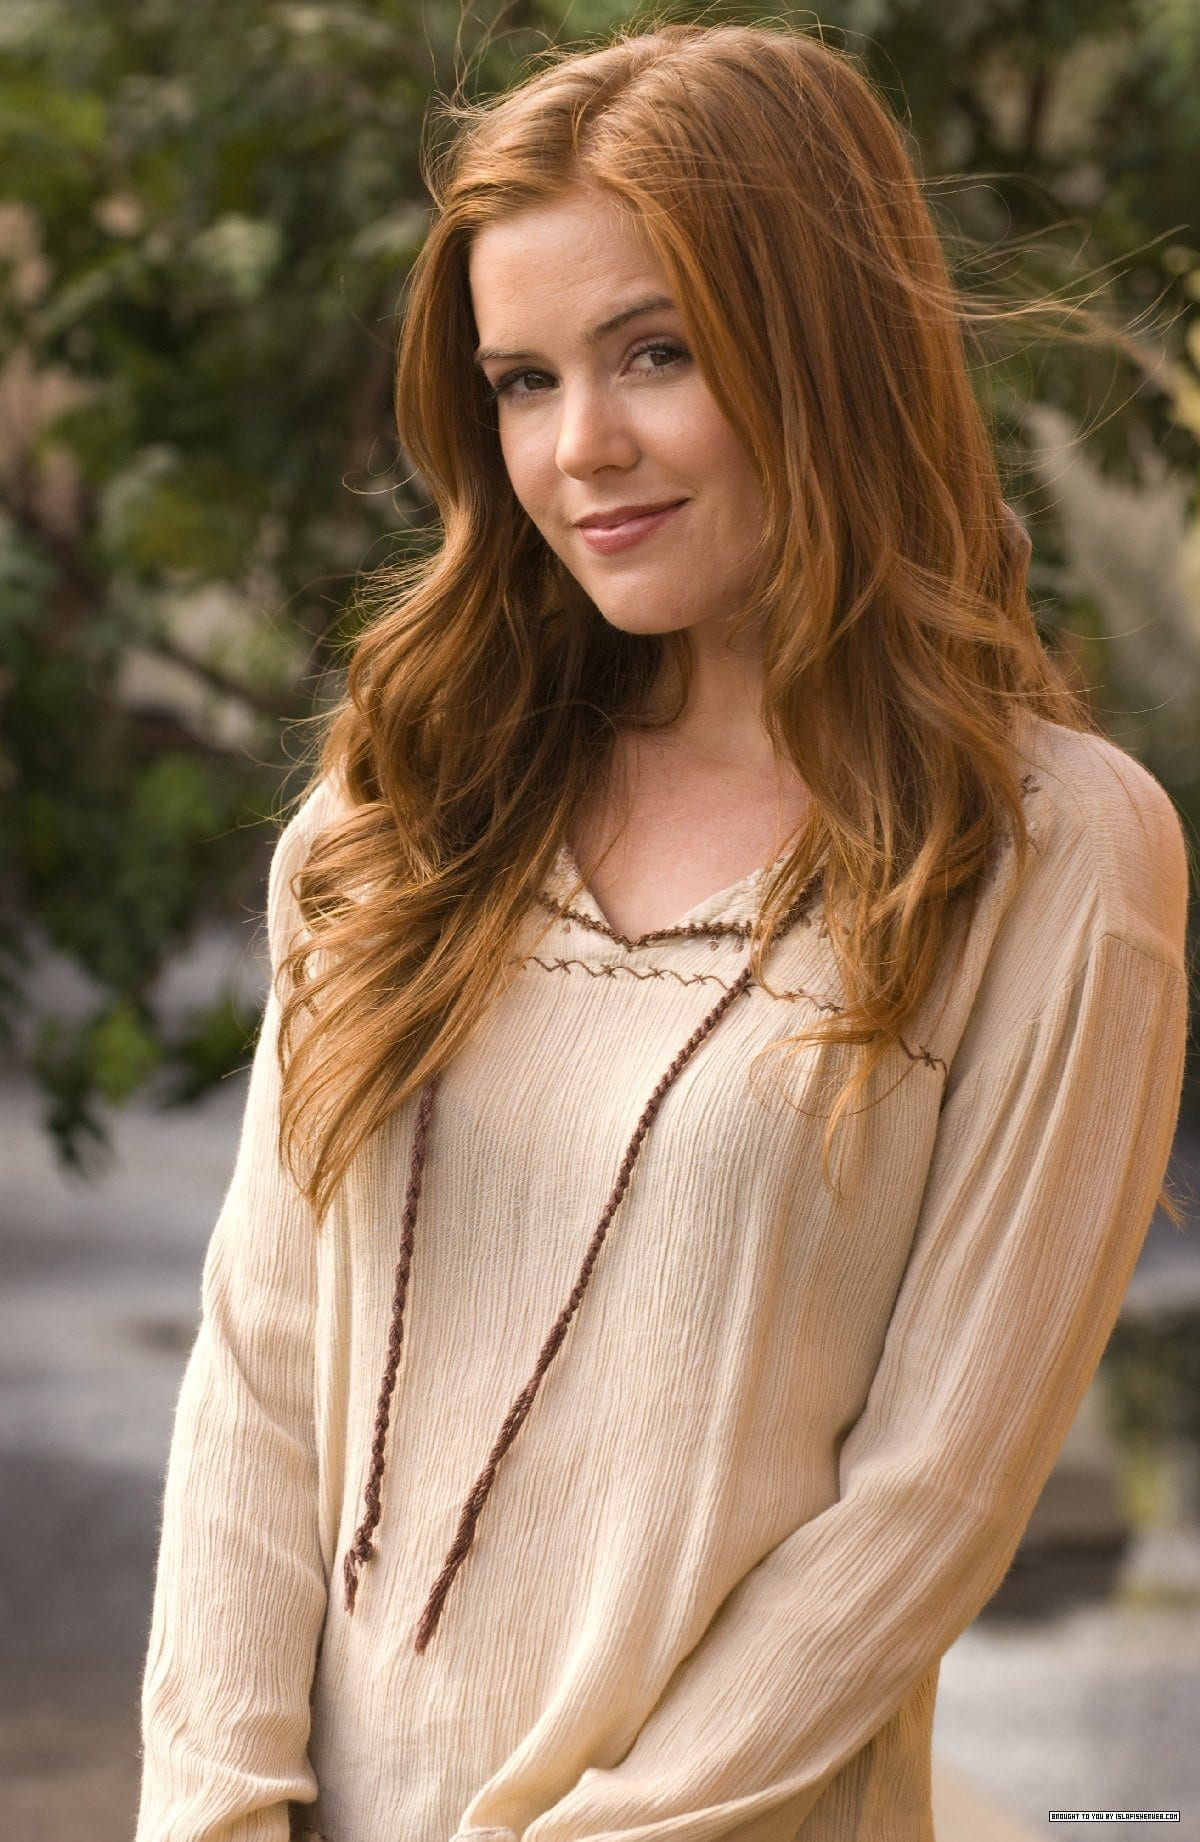 Isla-Fisher Cute Jewish Girls - 30 Most Pretty Jewish Women in the World